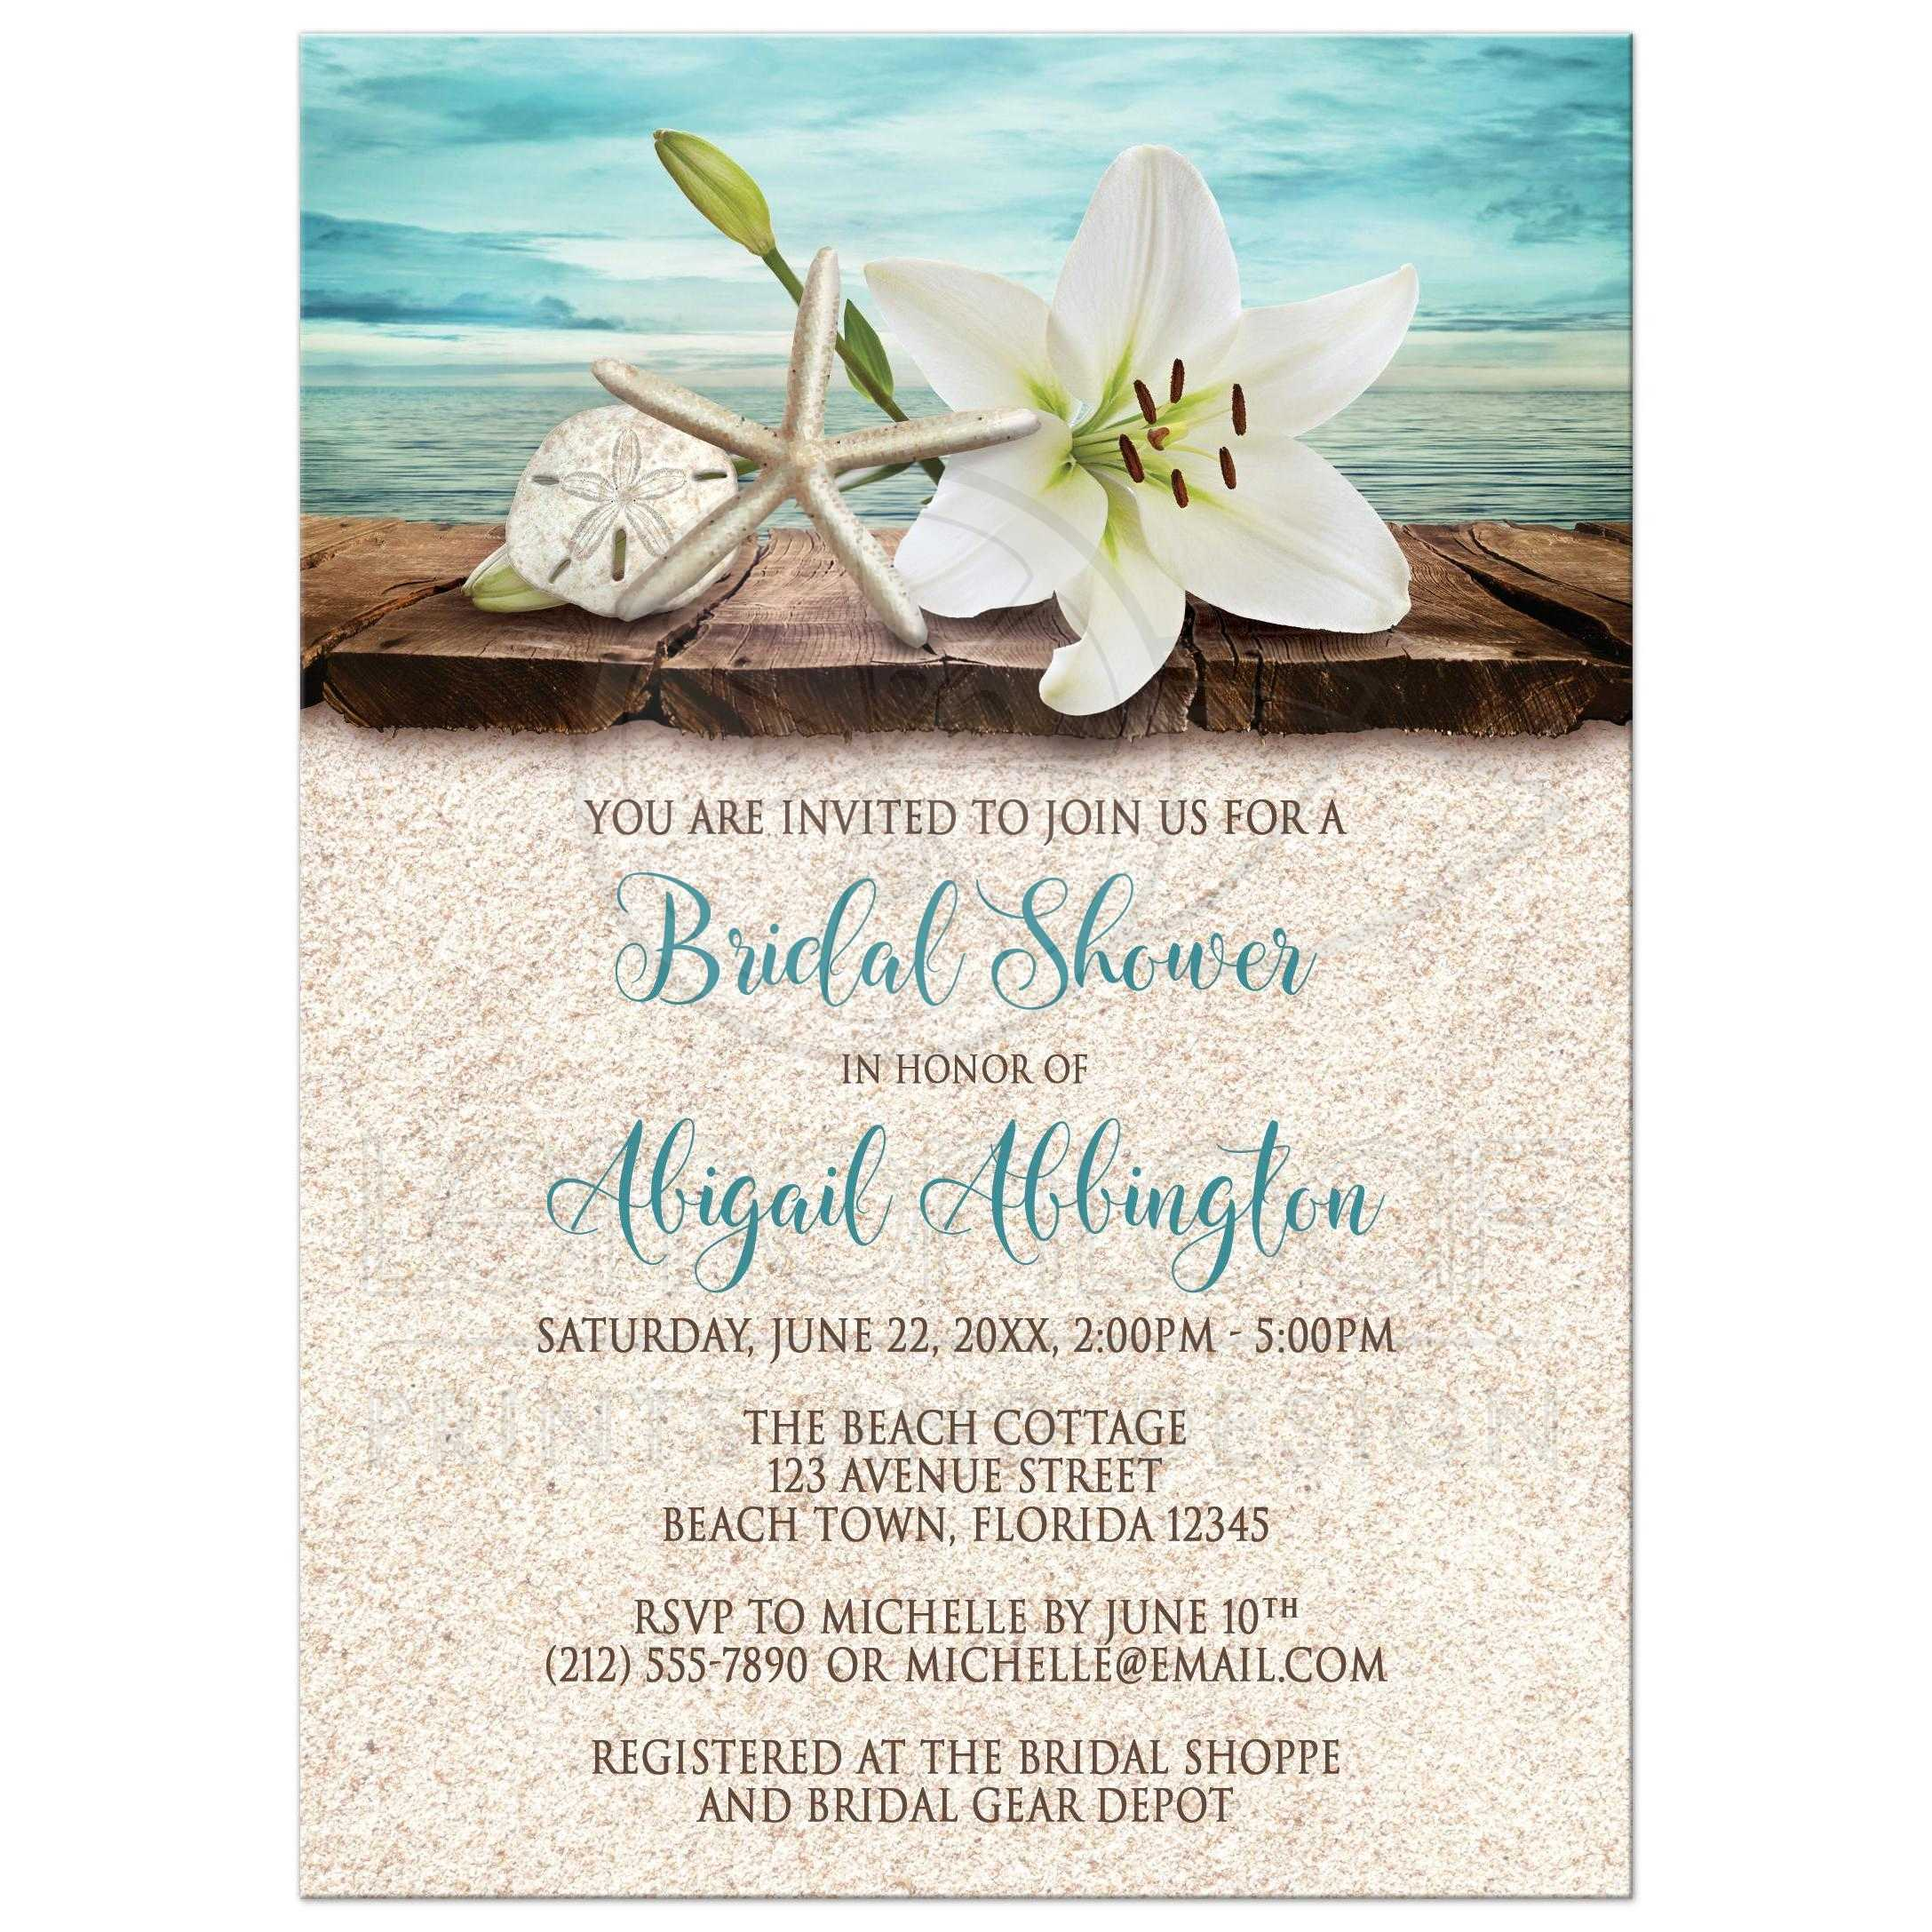 484d2006524 40709 Rectangle Lily Seashell Sand Beach Bridal Shower Invitations NEW.jpg t 1470175879